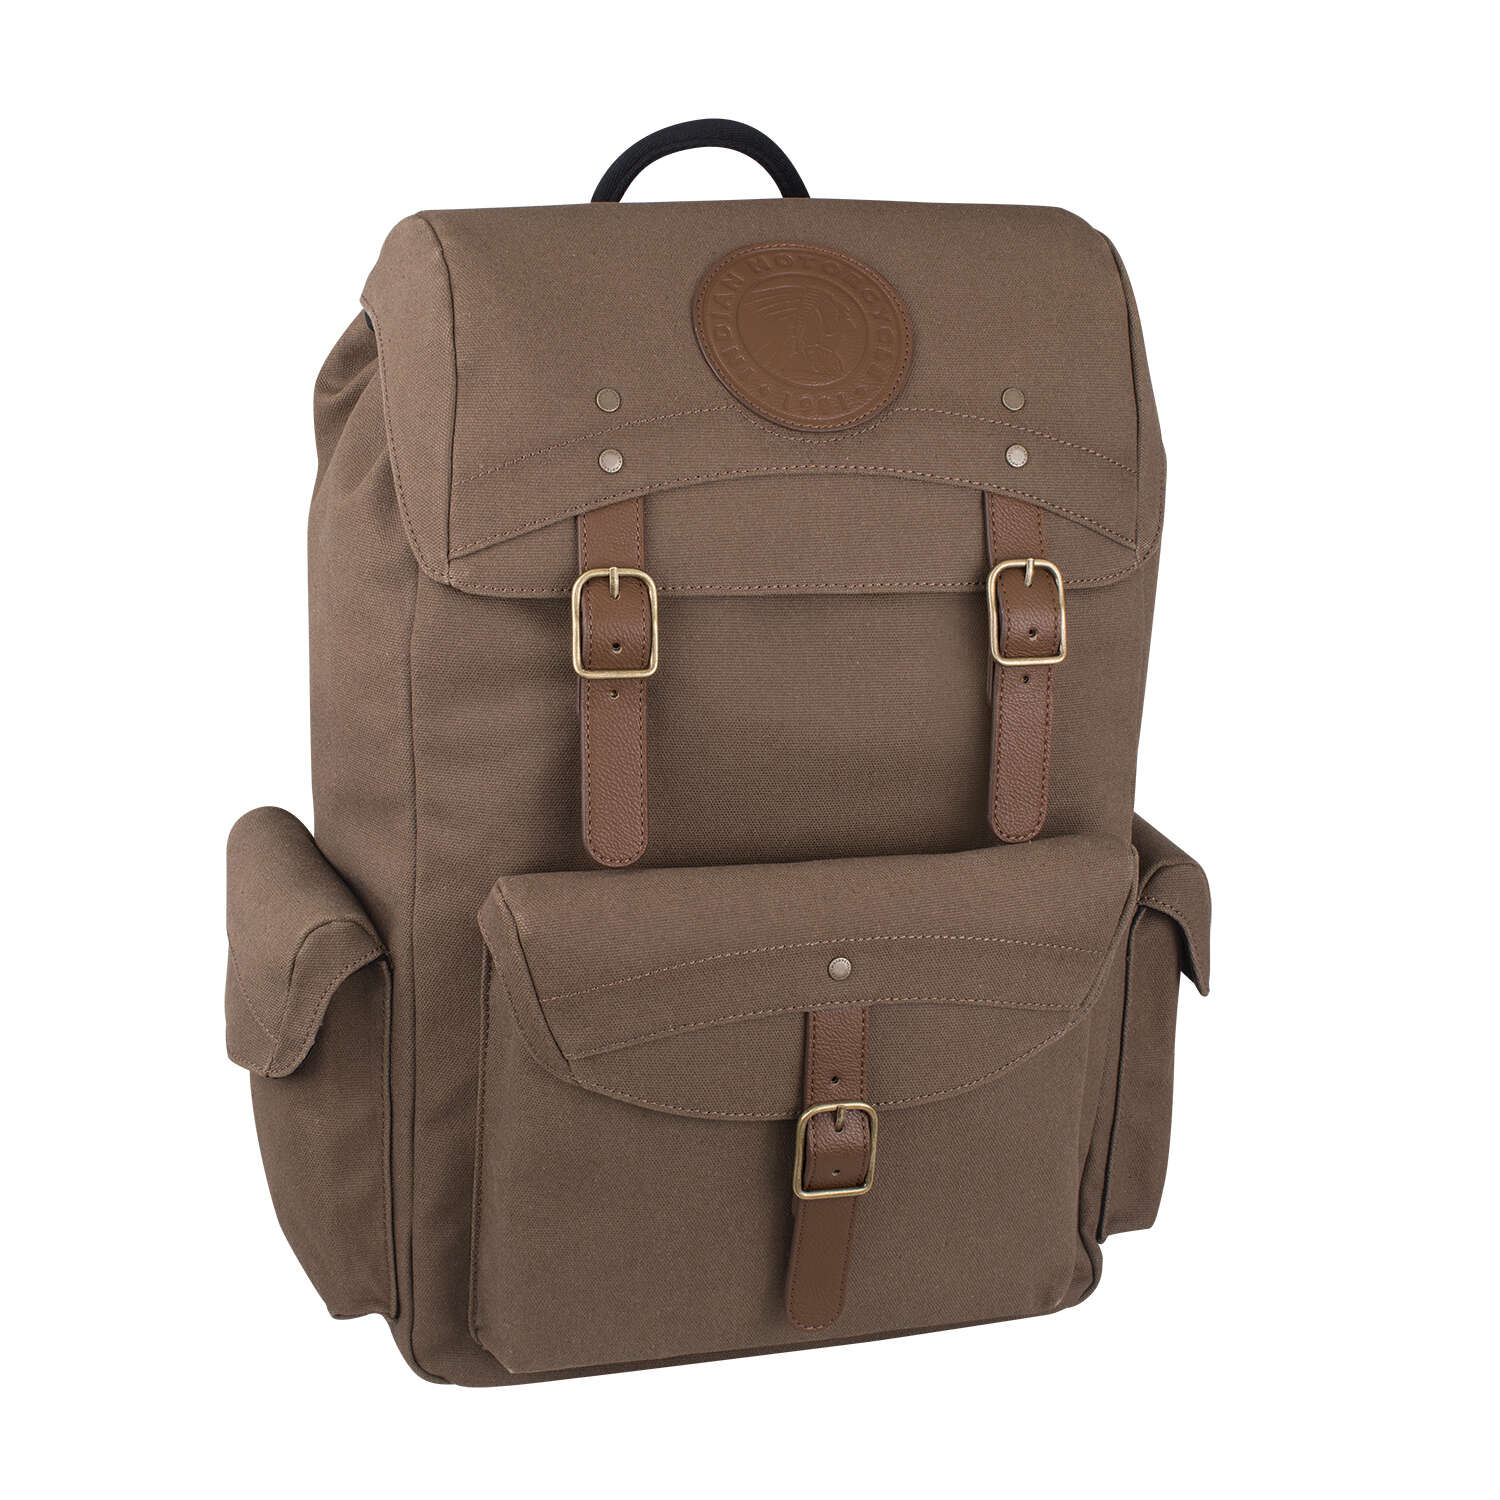 Bags/Luggage